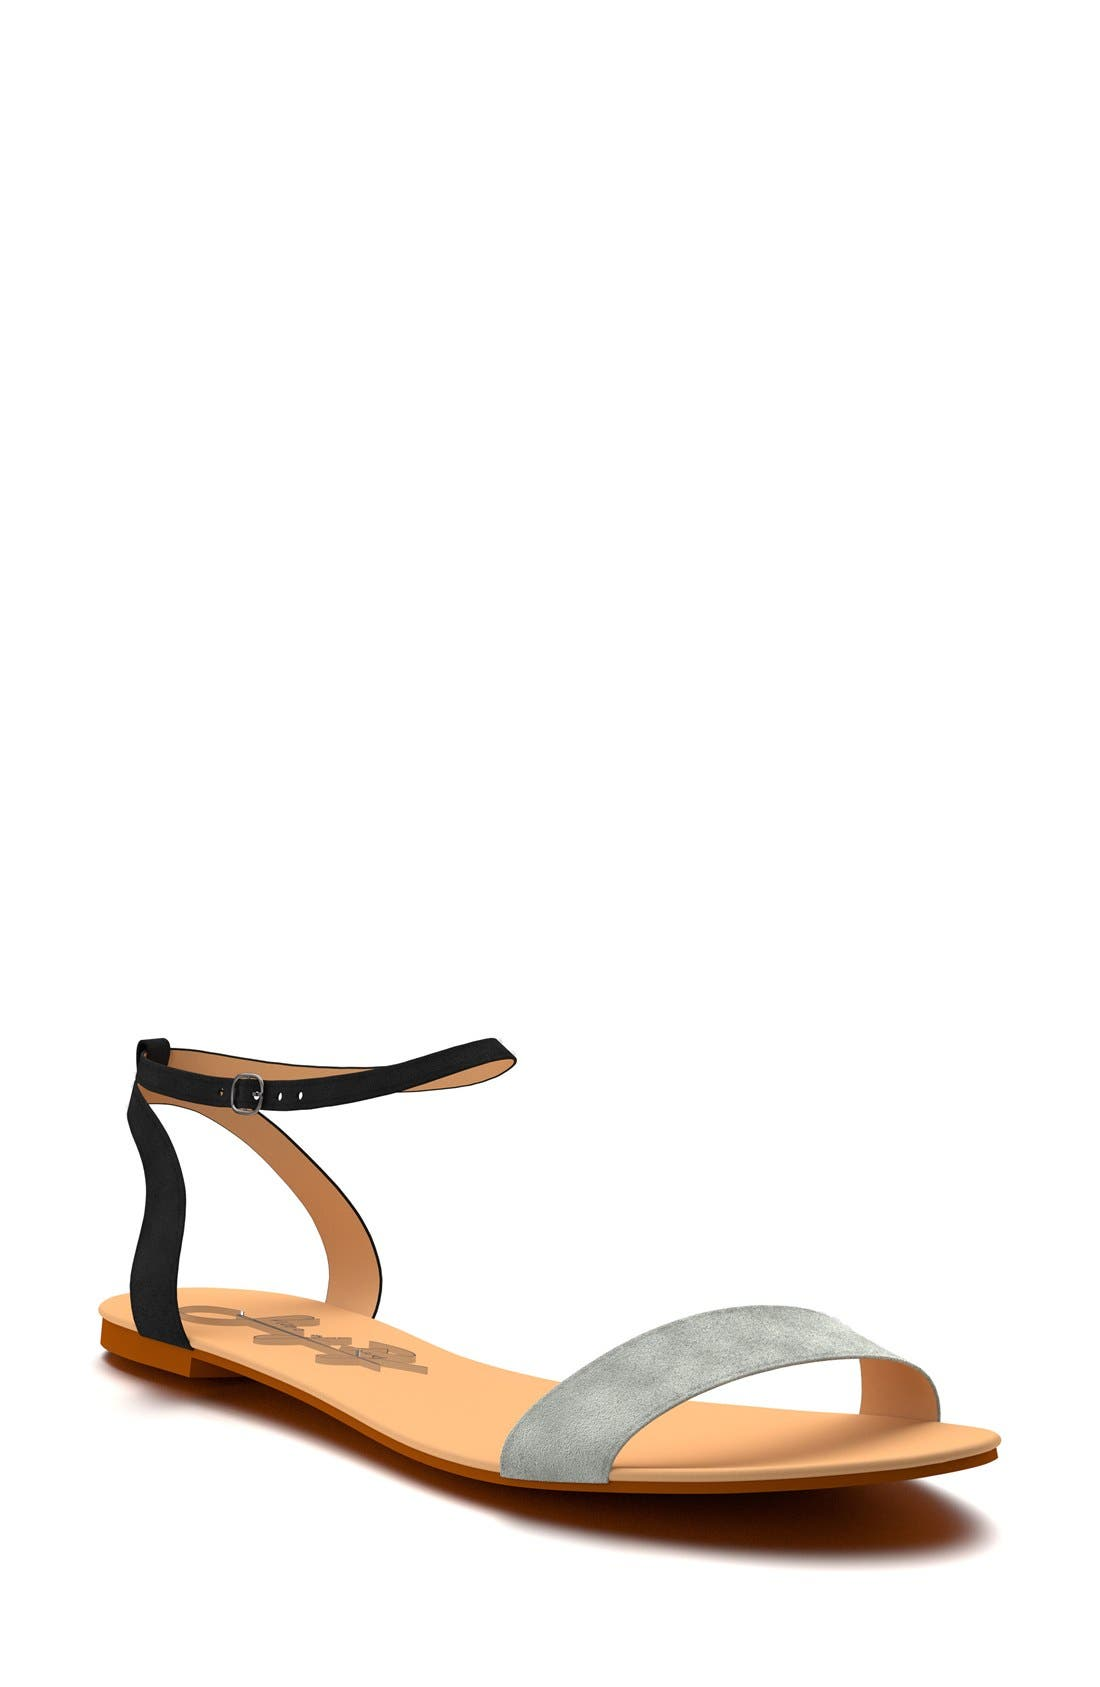 Main Image - Shoes of Prey Ankle Strap Sandal (Women)